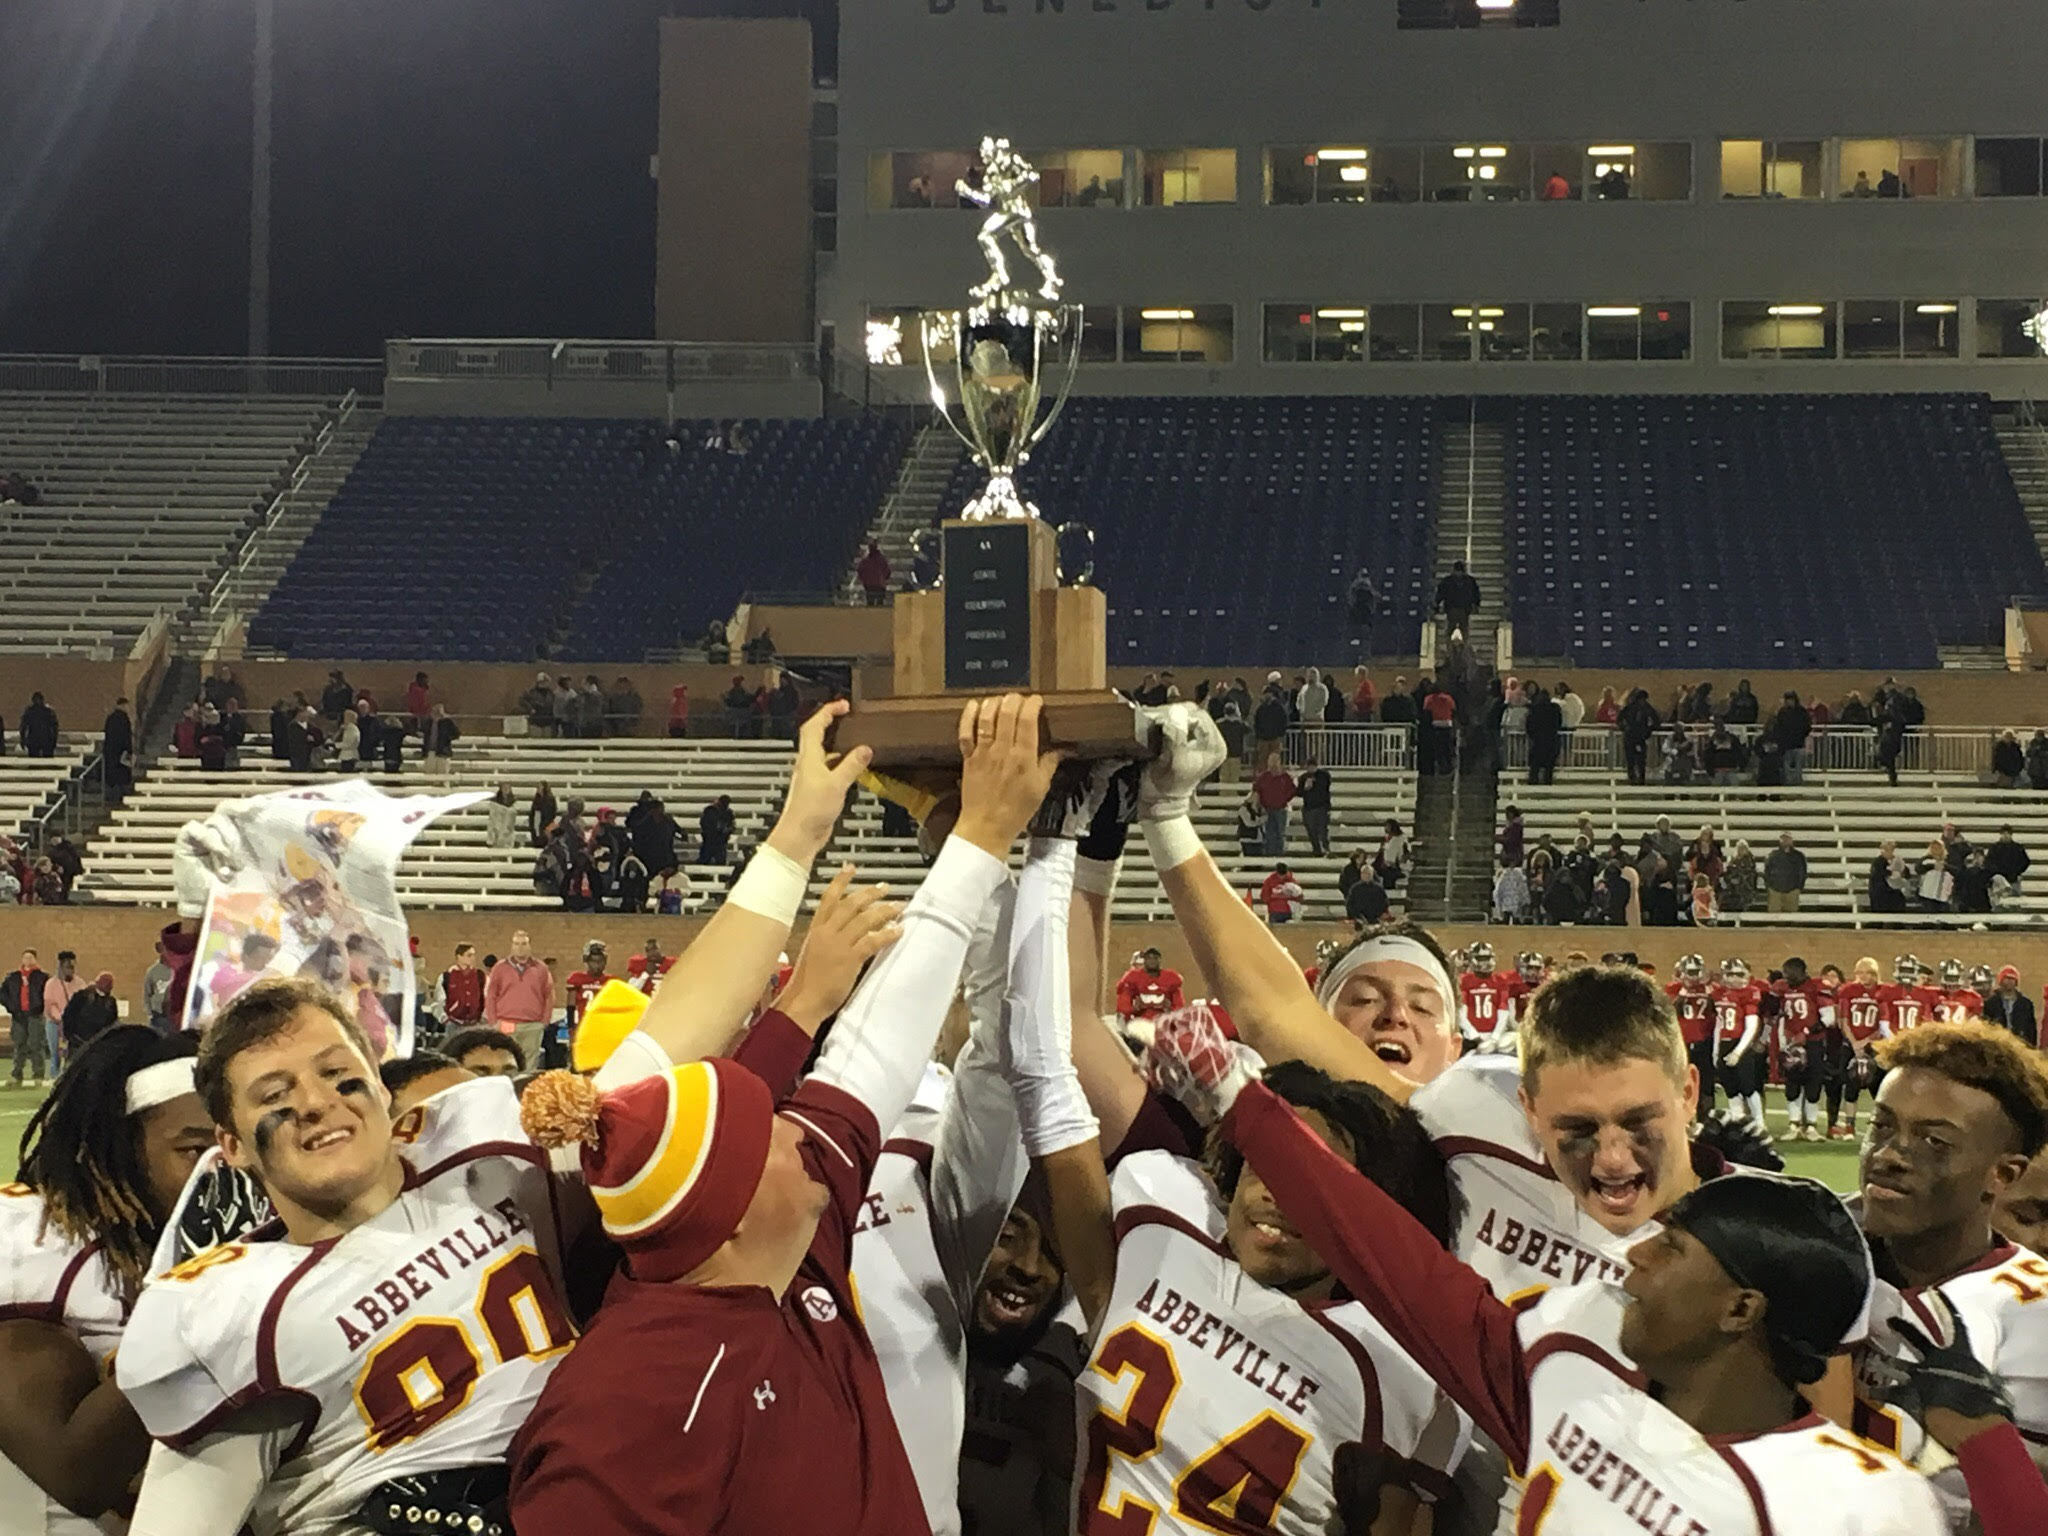 Football team holding trophy